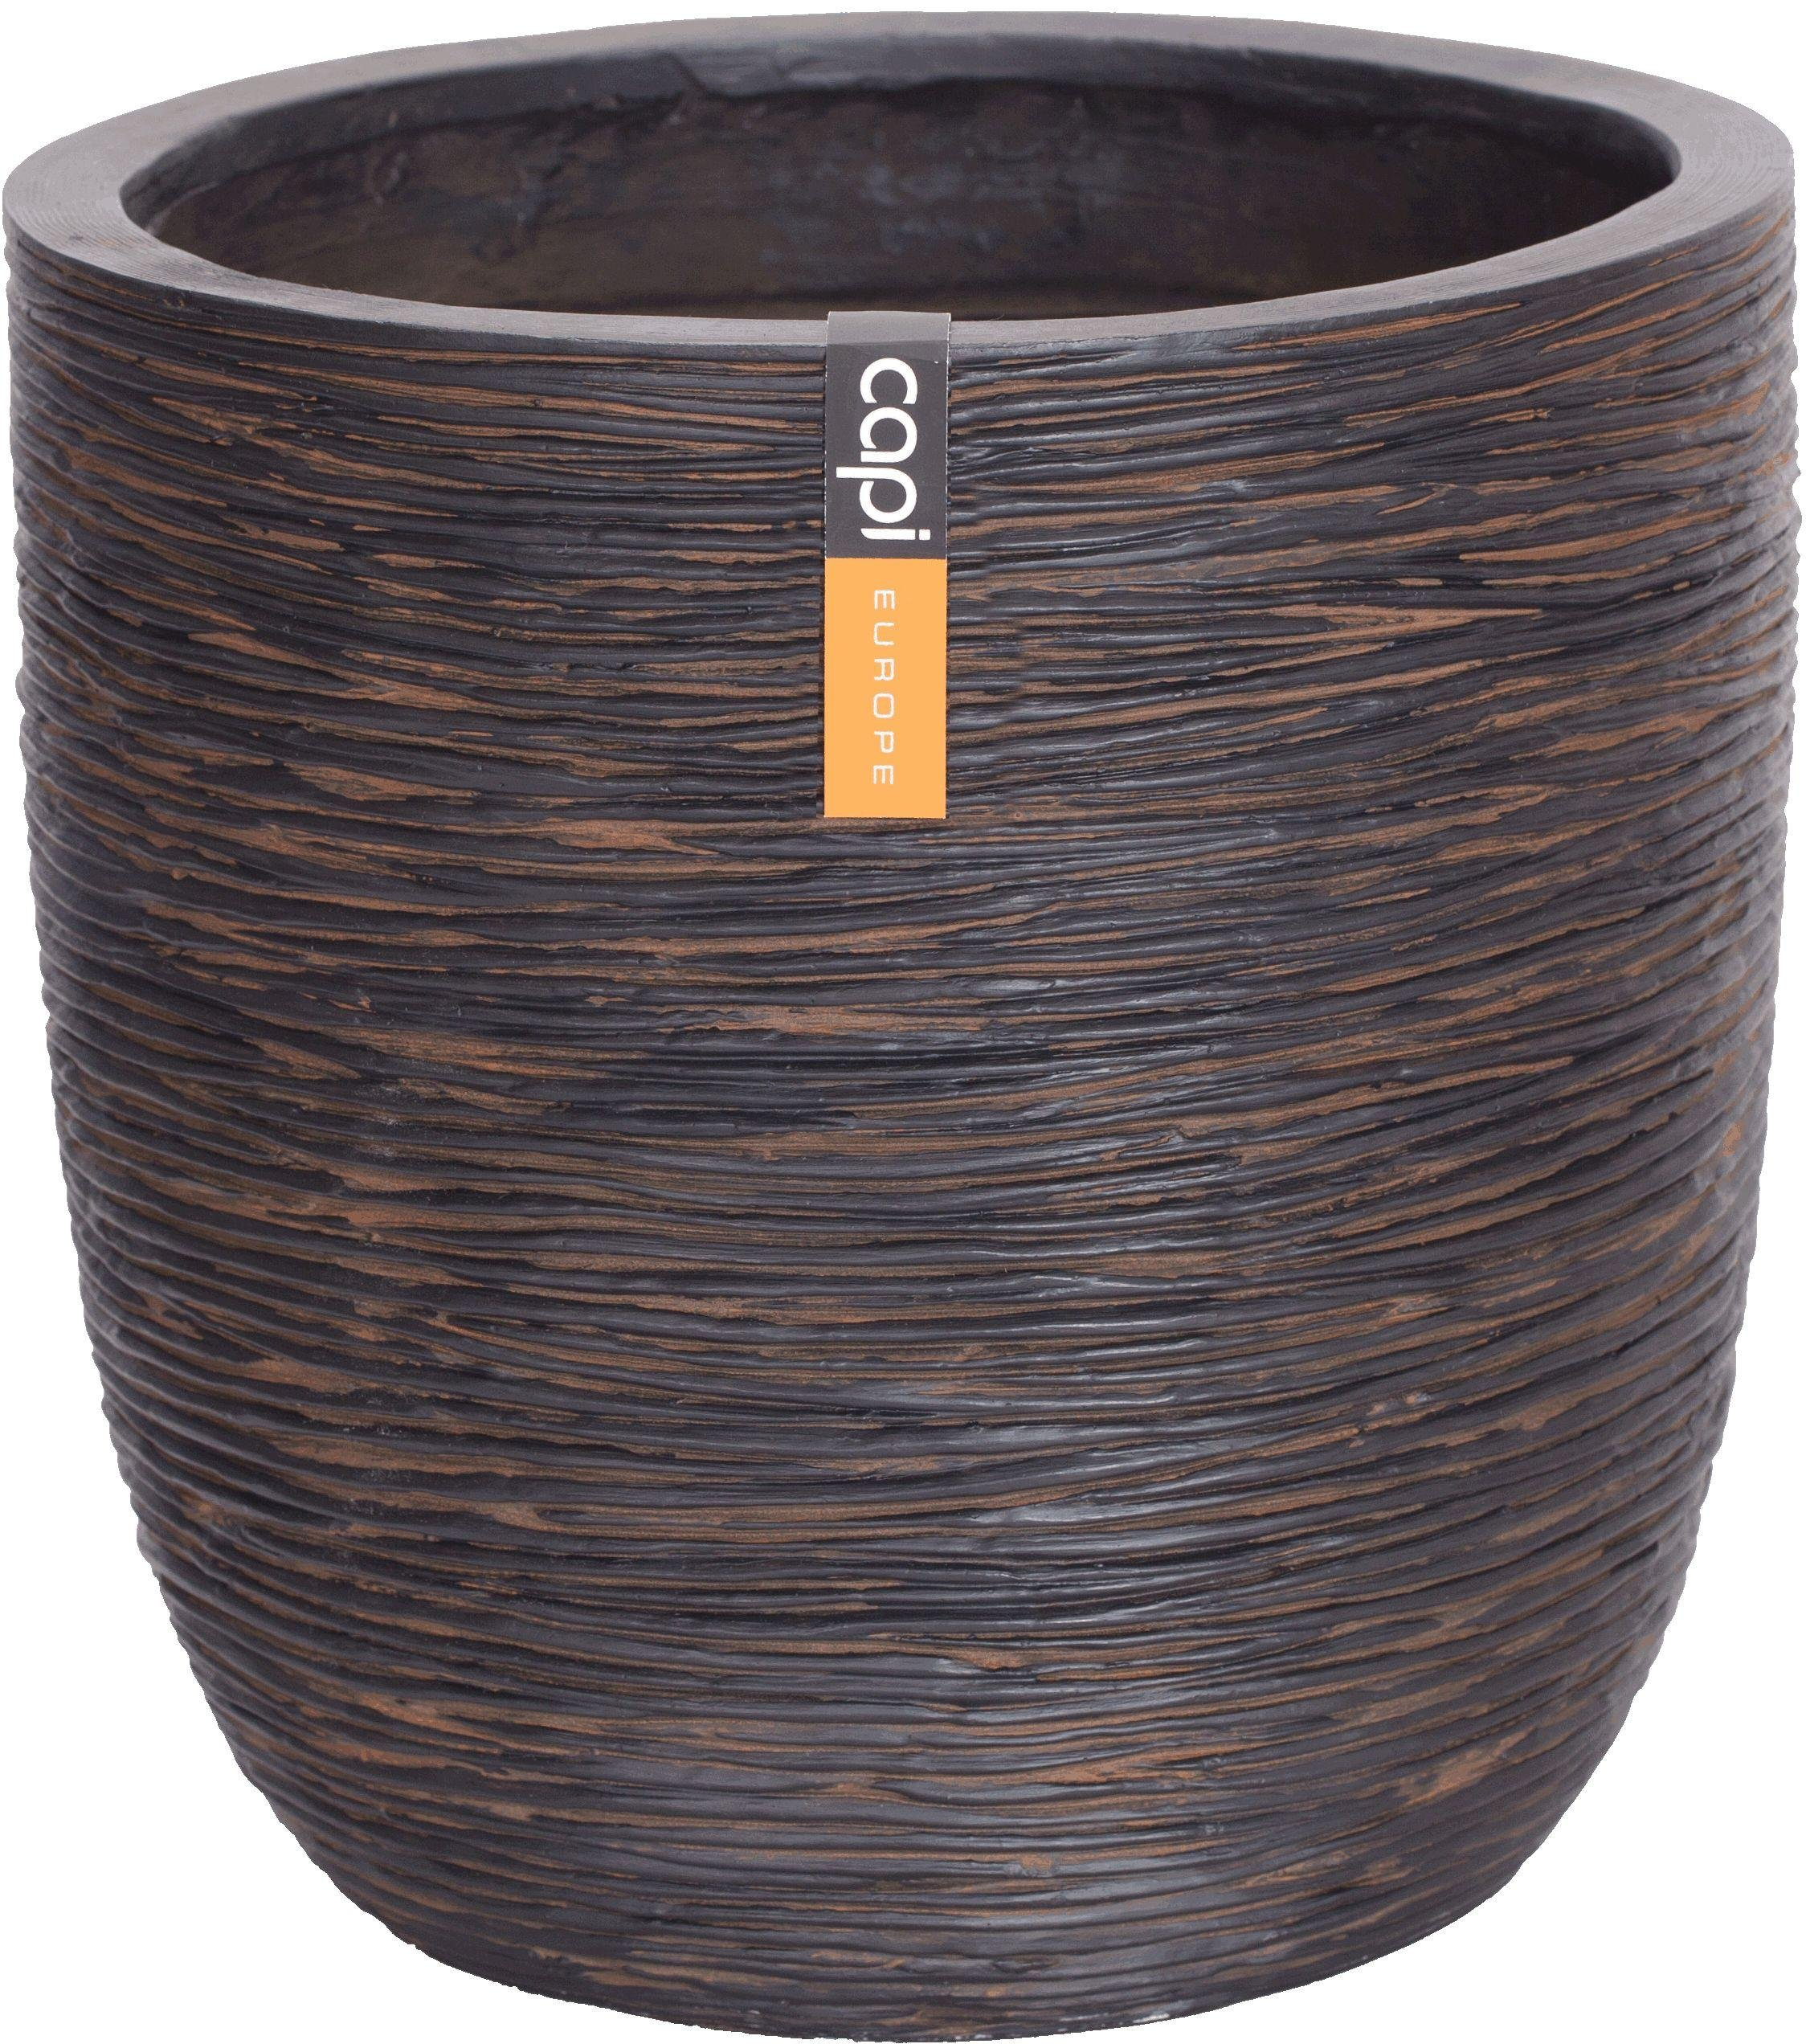 Capi Nature Brown Ribbed Planter Egg - 26 x 28cm. lowest price